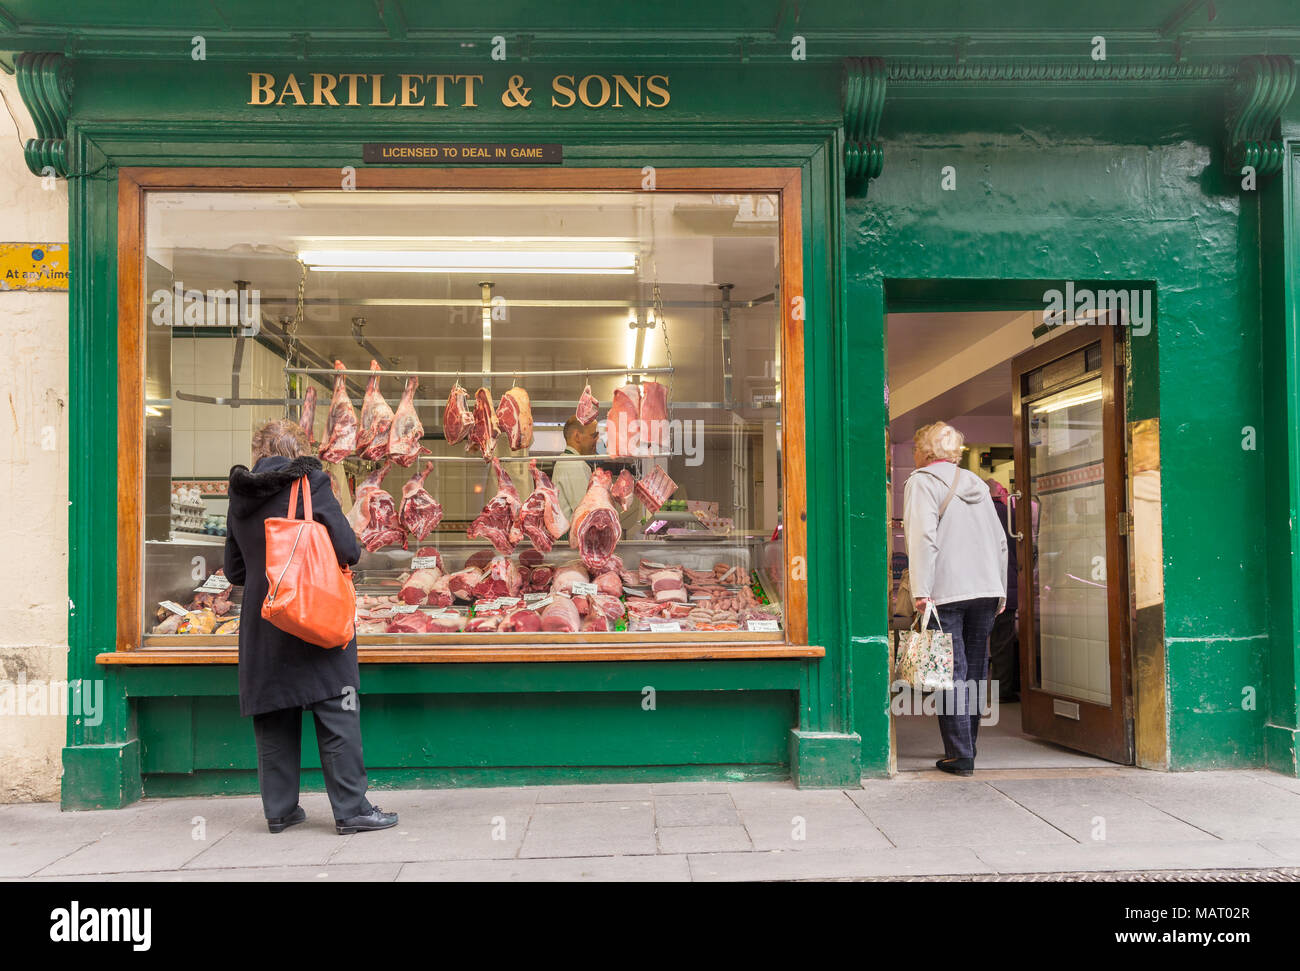 Bartlett & Sons, a traditional butcher sop on the high street in Bath, UK - Stock Image